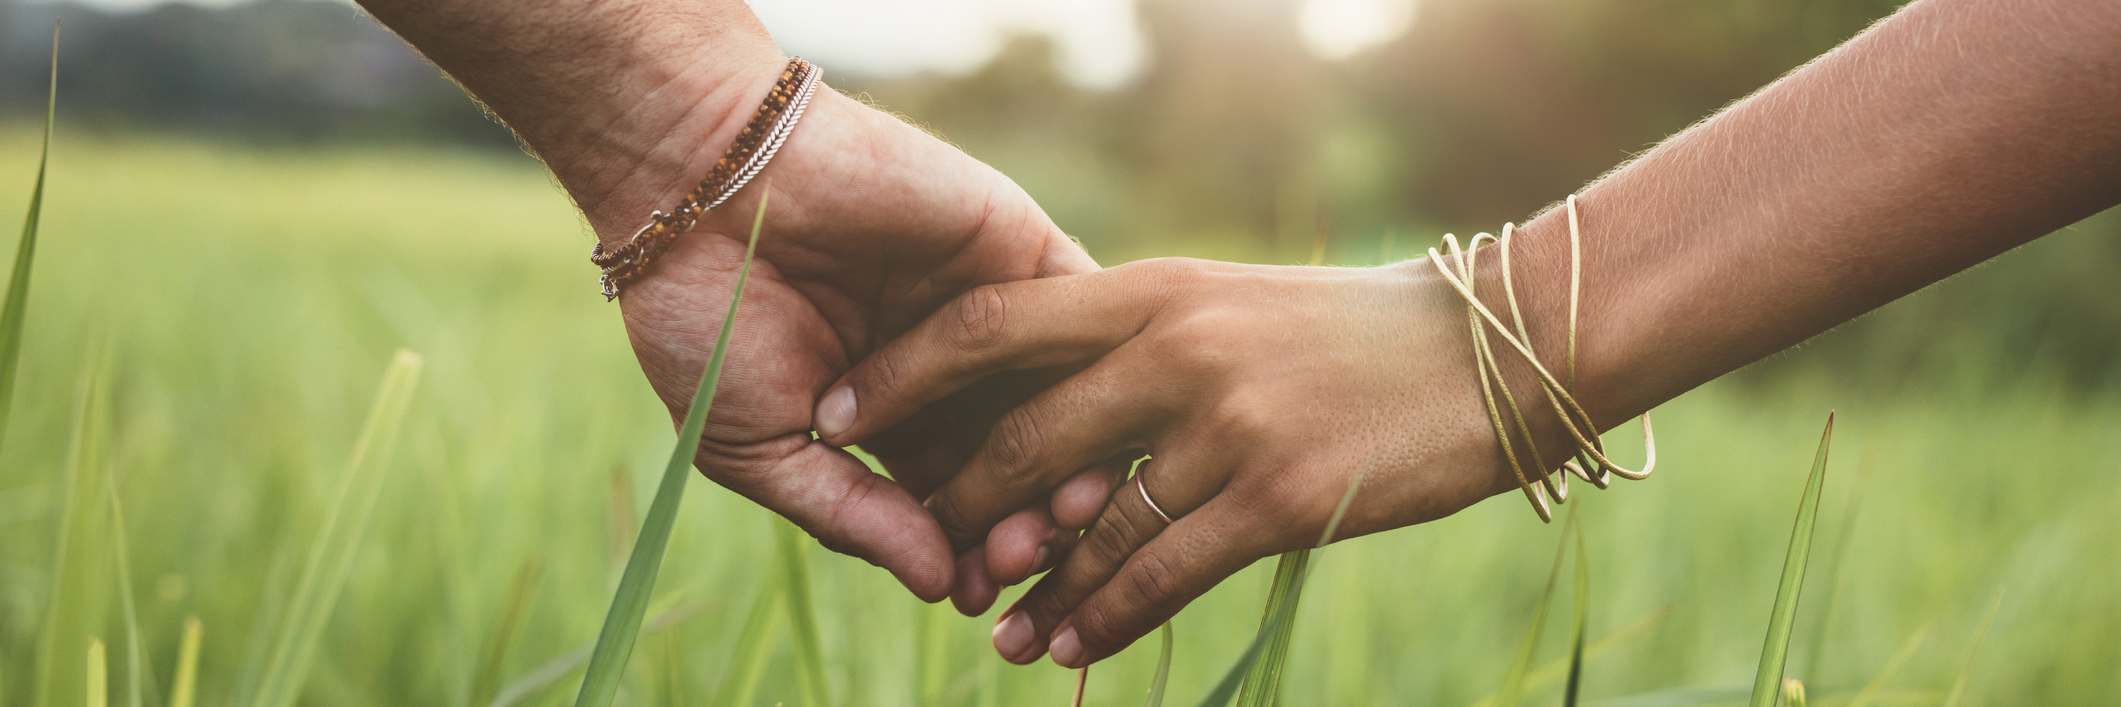 Man and wife holding hands, walking in a grassy field.